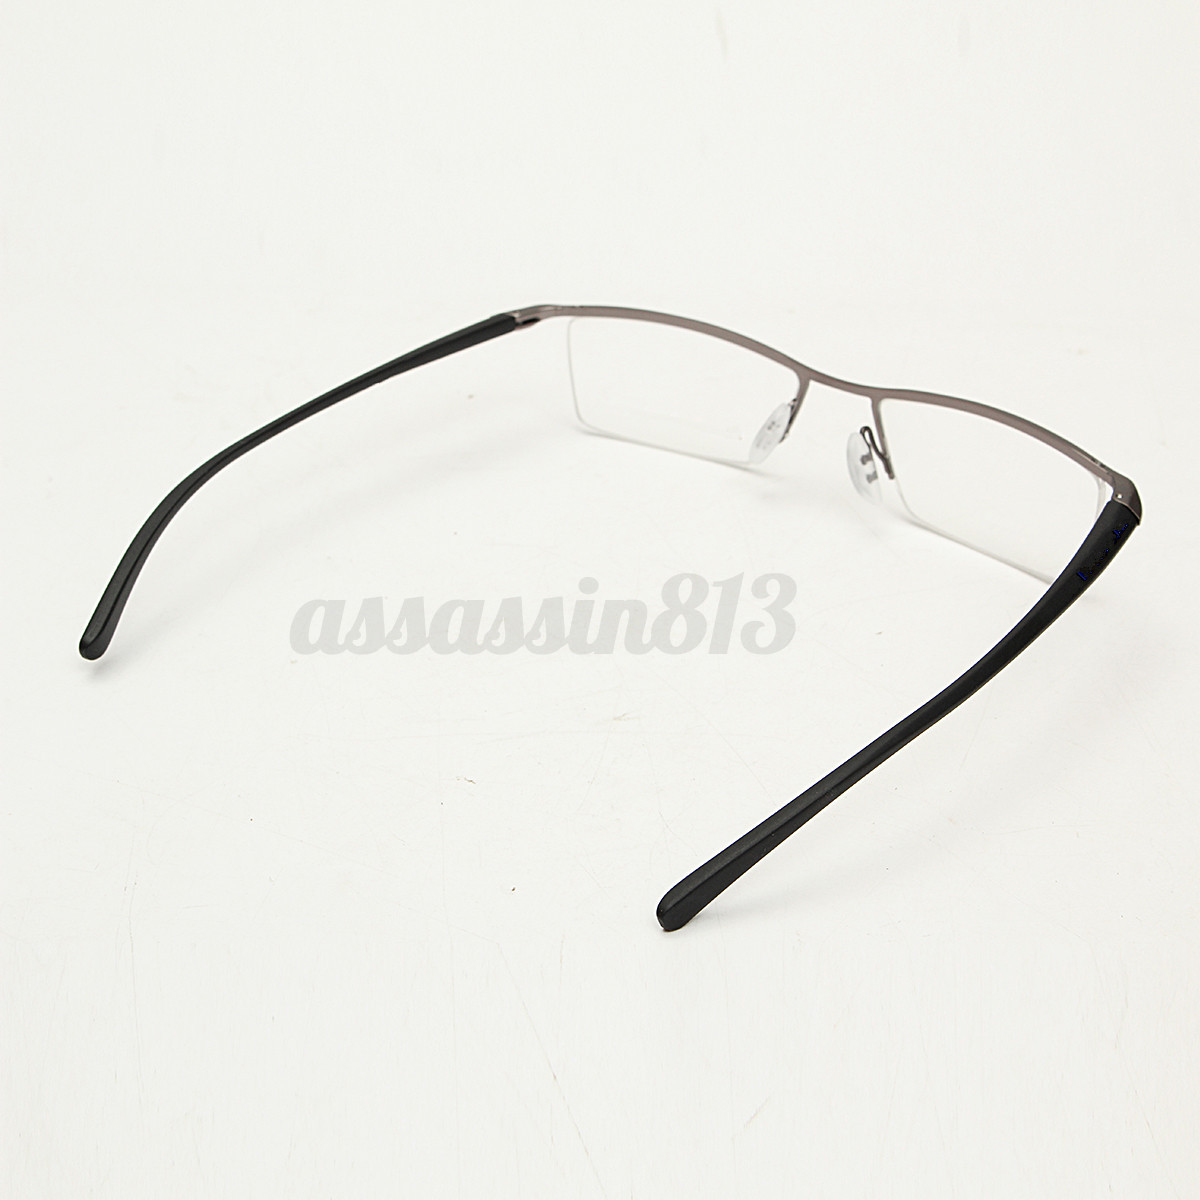 Eyeglass Frame Oxidation : Men Titanium Alloy Spectacles Glasses Frame Half-Rim ...